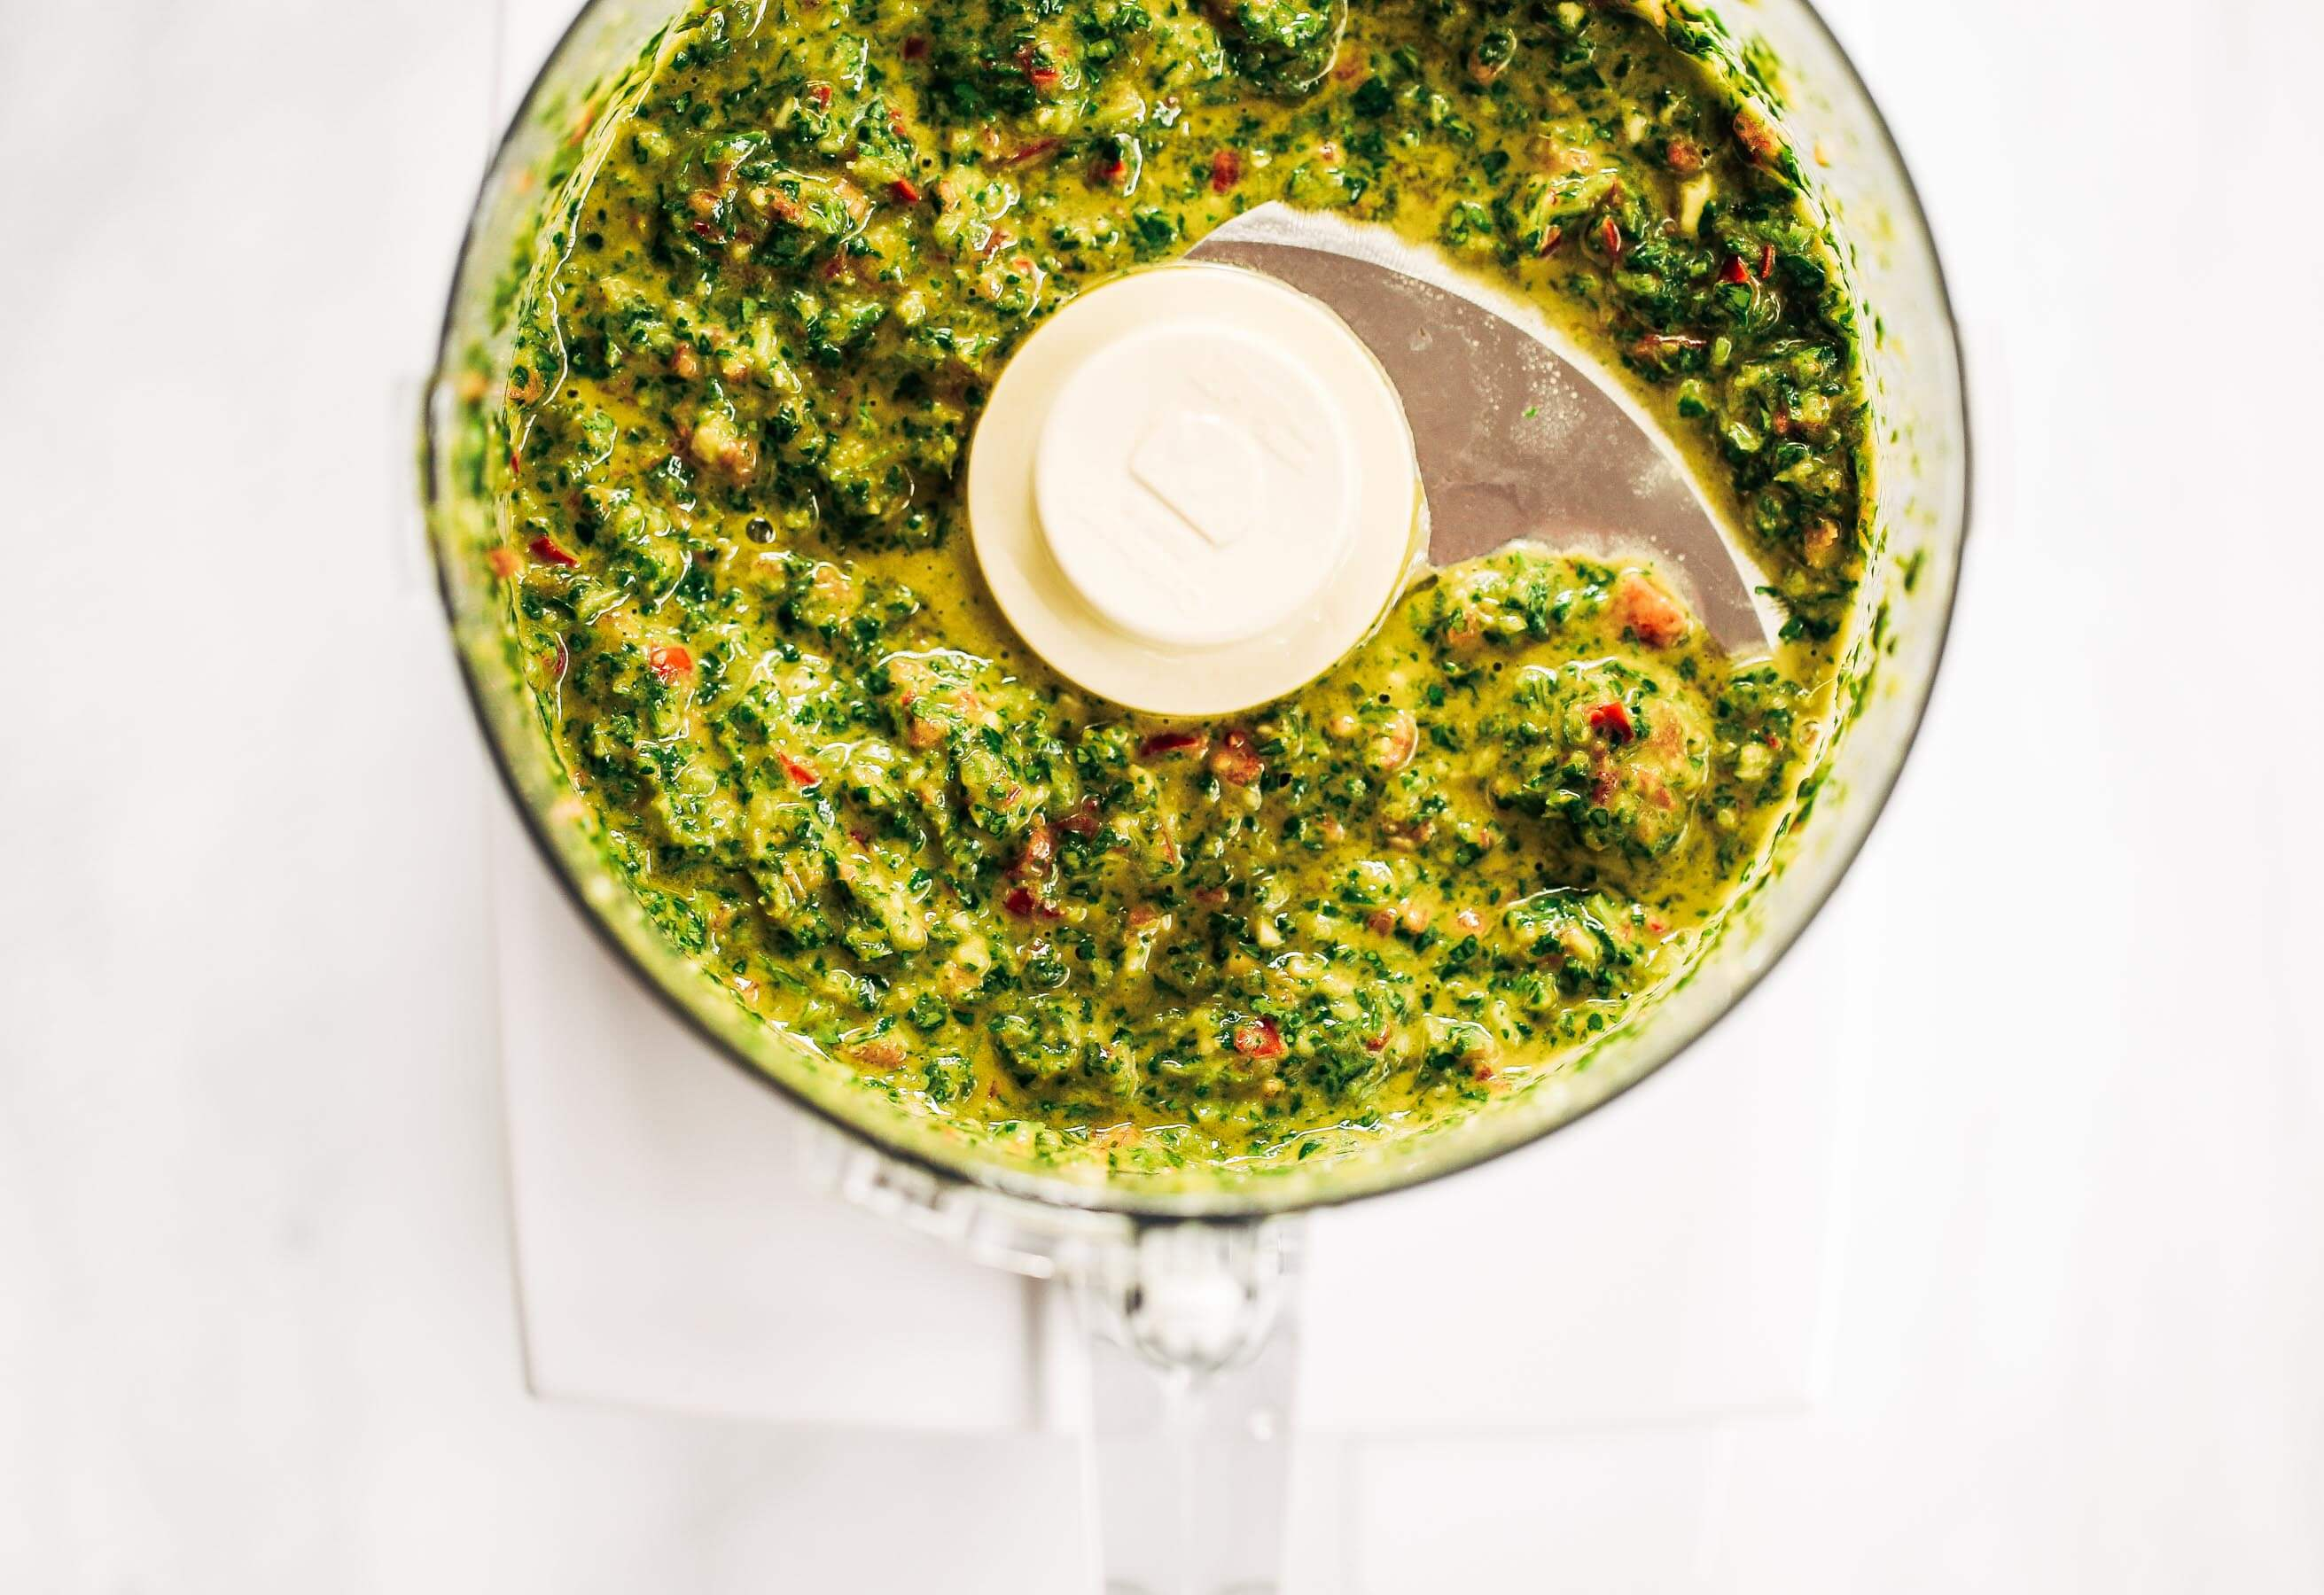 Zesty, fresh, and flavorful, cilantro garlic chimichurri with jalapeno pepper. Perfect for marinating chicken, beef, or topping off sweet potato fries and salads! Made easy in the blender in five minutes. Paleo, gluten free, and whole30 friendly. Easy whole30 dinner recipes. Whole30 recipes. Whole30 lunch. Whole30 recipes just for you. Whole30 meal planning. Whole30 meal prep. Healthy paleo meals. Healthy Whole30 recipes. Easy Whole30 recipes